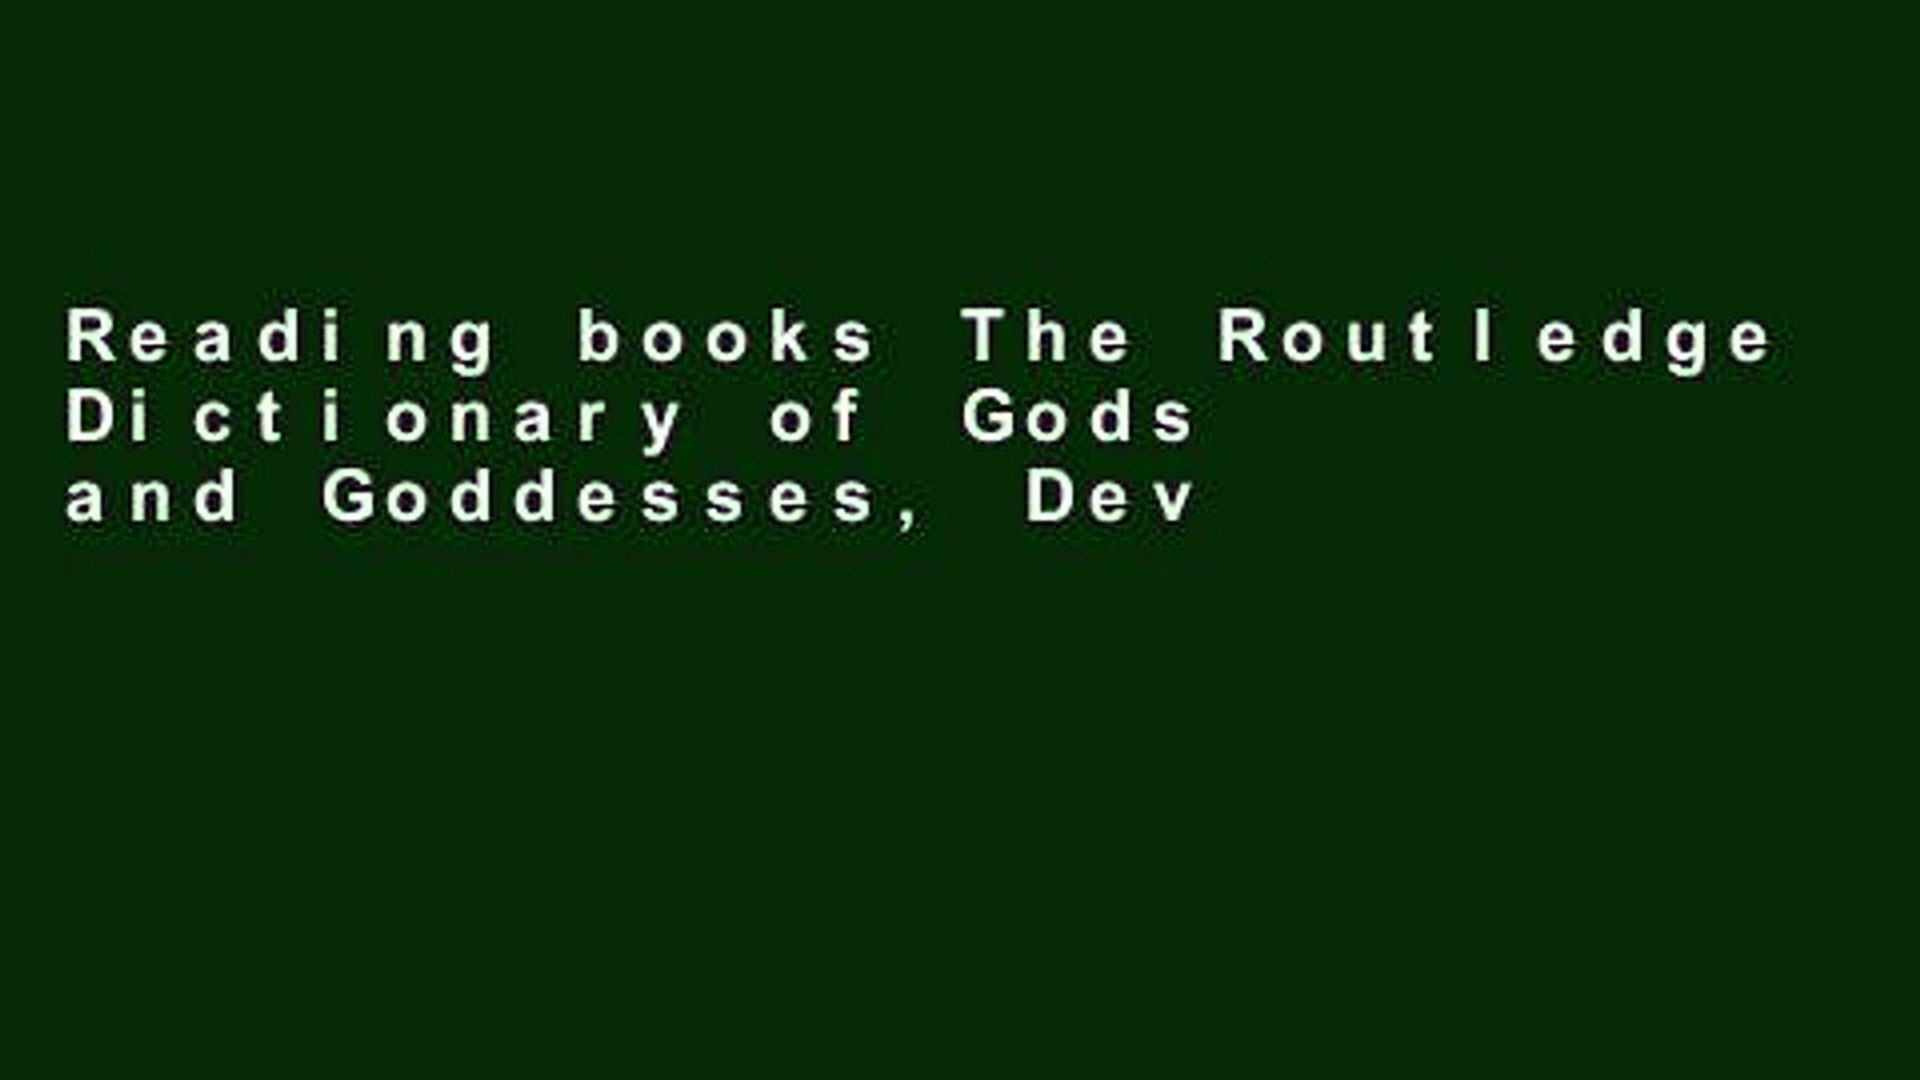 The Routledge Dictionary of Gods, Goddesses, Devils and Demons